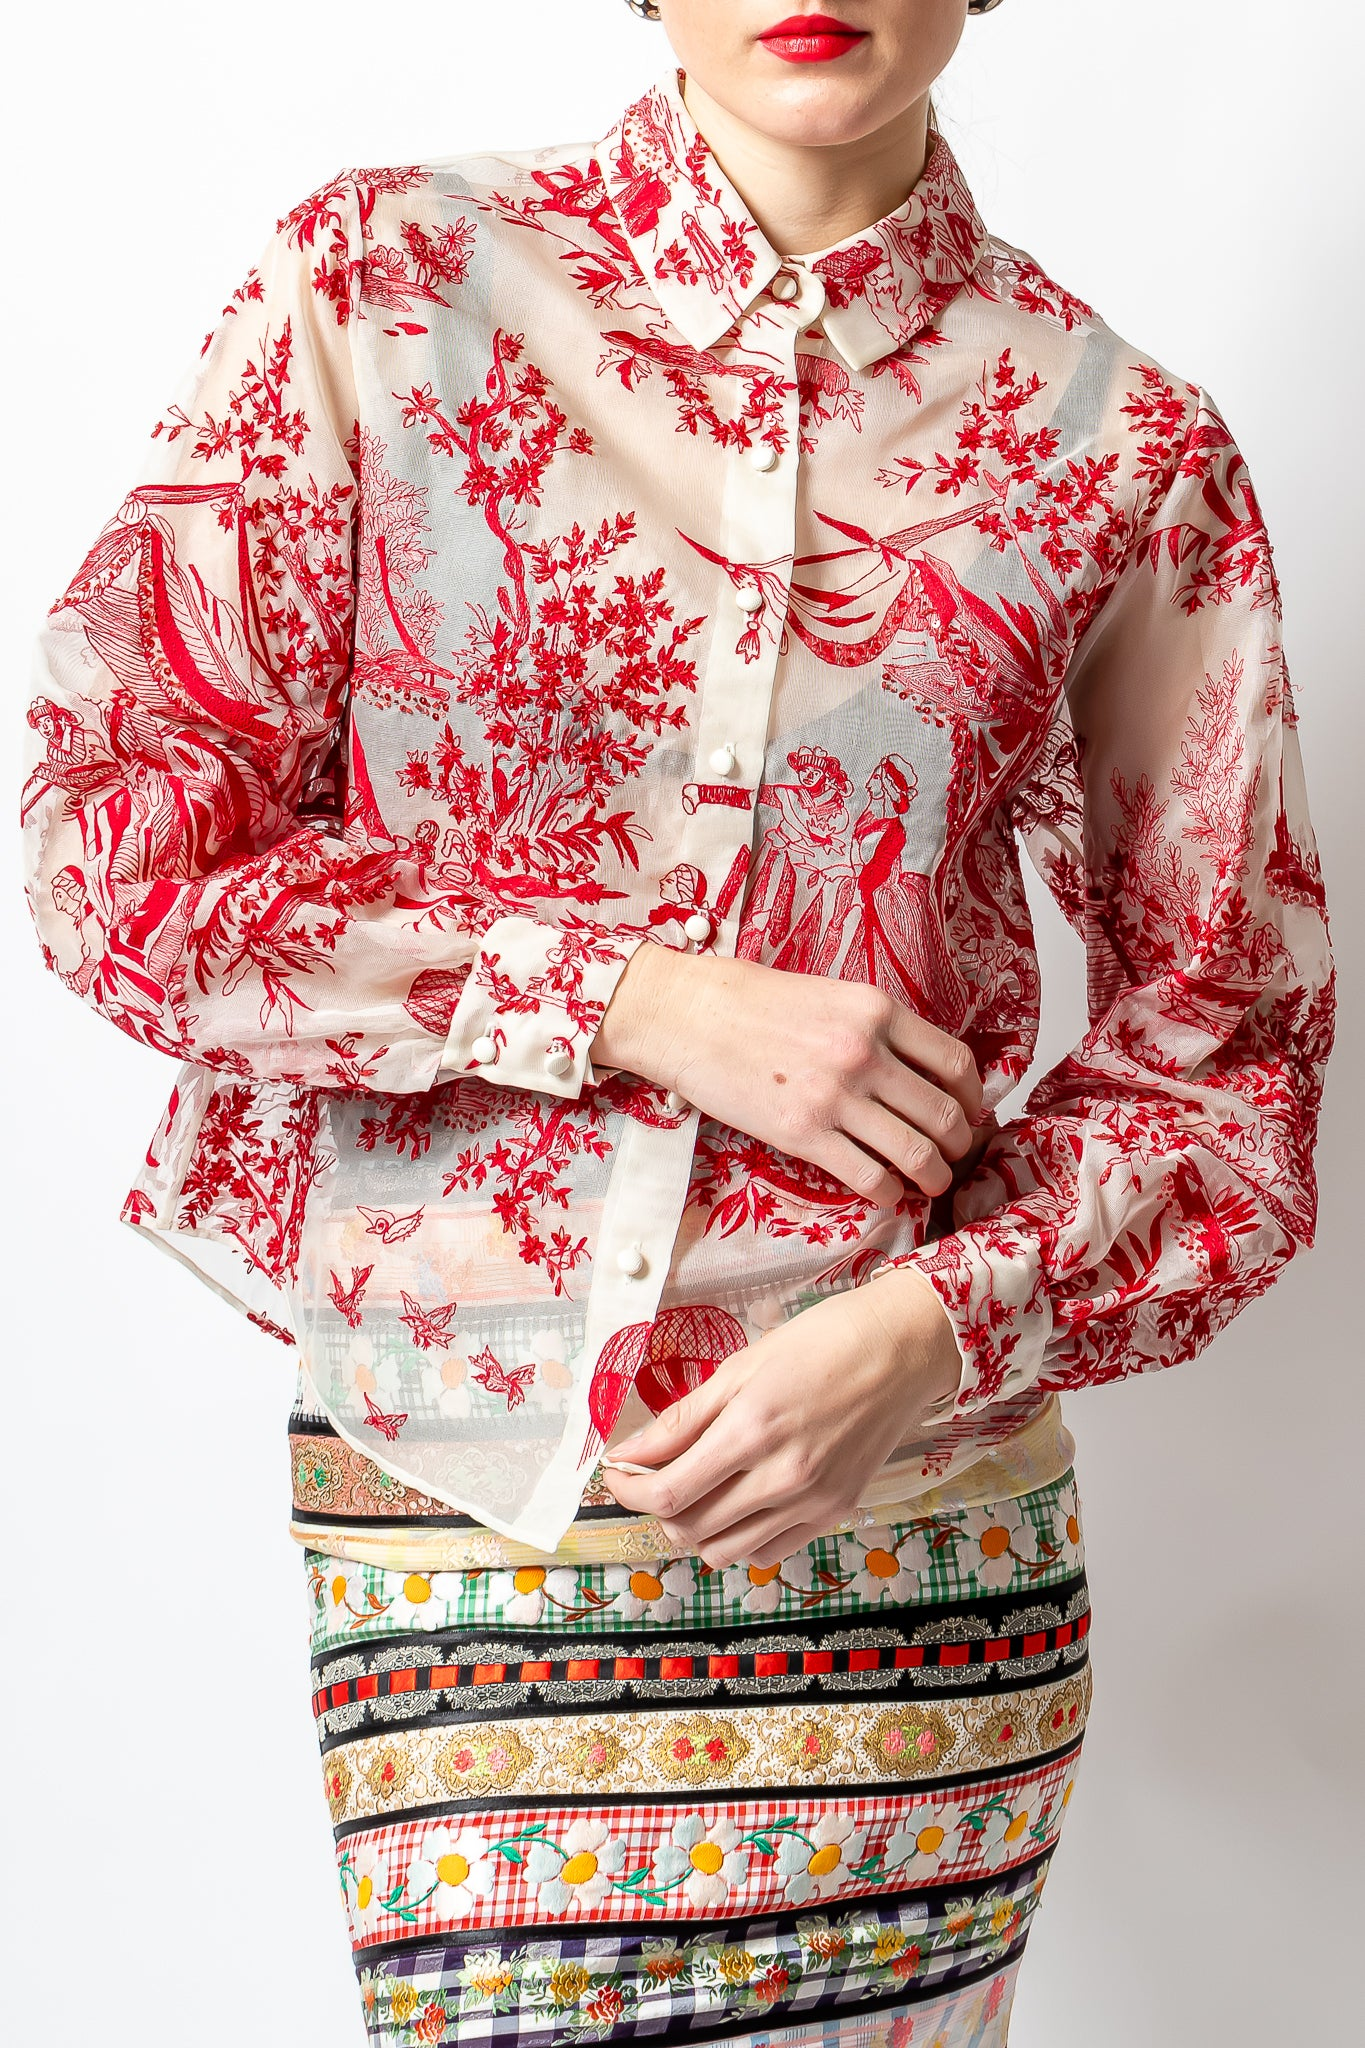 Girl wearing red Oscar de la Renta couture embroidered toile blouse & Moschino skirt @ Recess LA